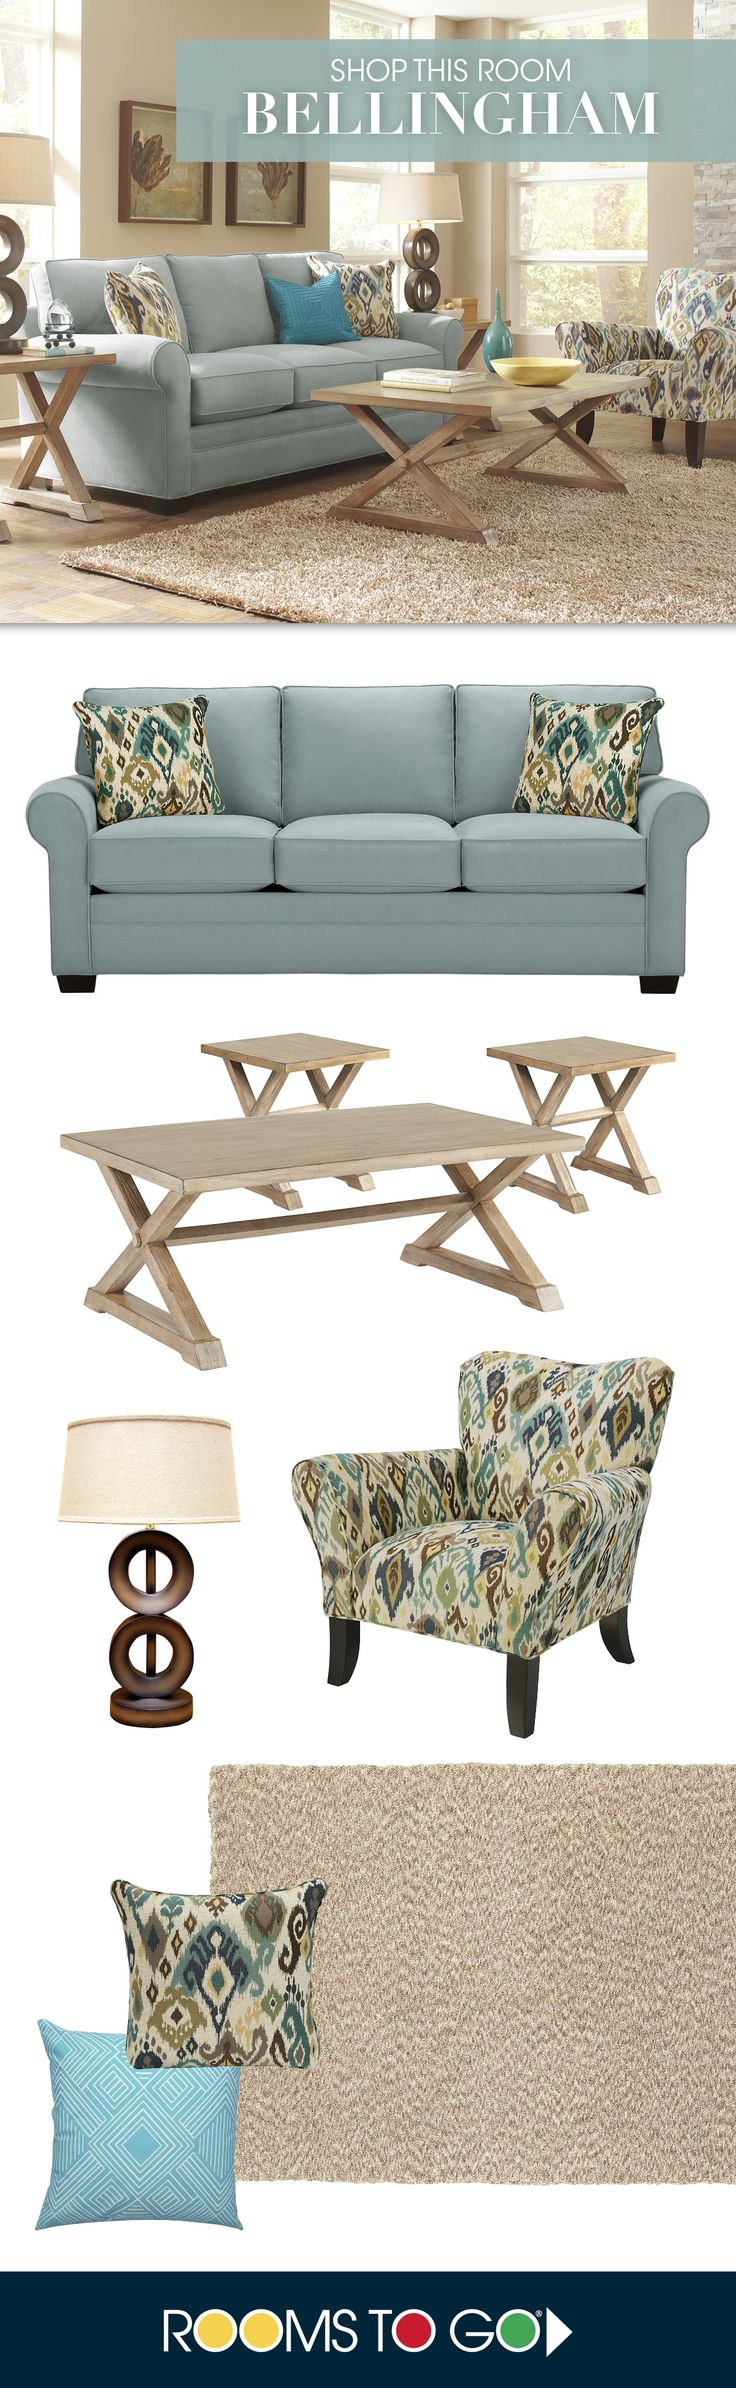 Create a fresh inviting space when you select the Bellingham living room. Shop the collection now!